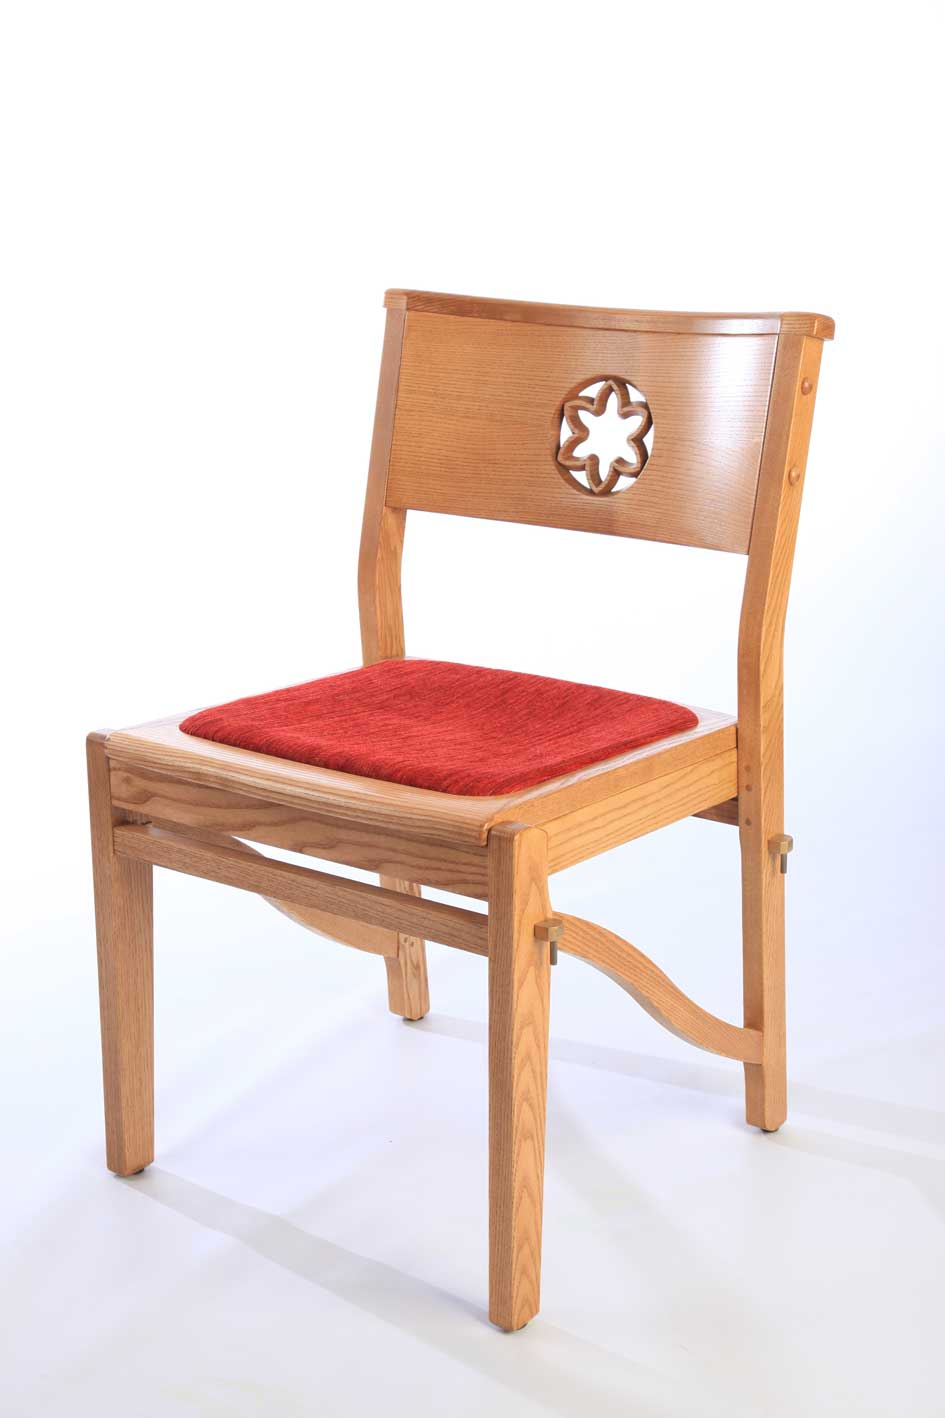 Wooden frame stackable chair with red upholstered seat and engraved back